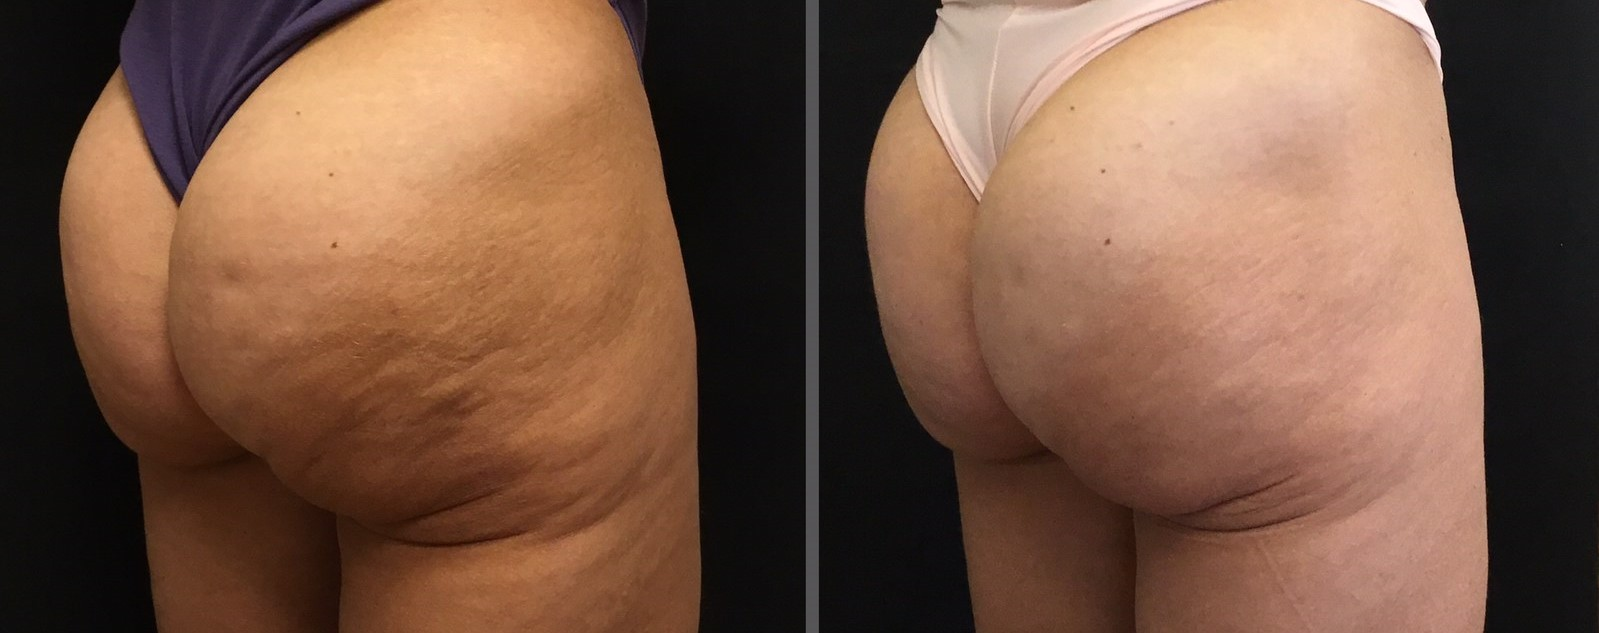 Before and after cellulite treatment with Sculptra filler